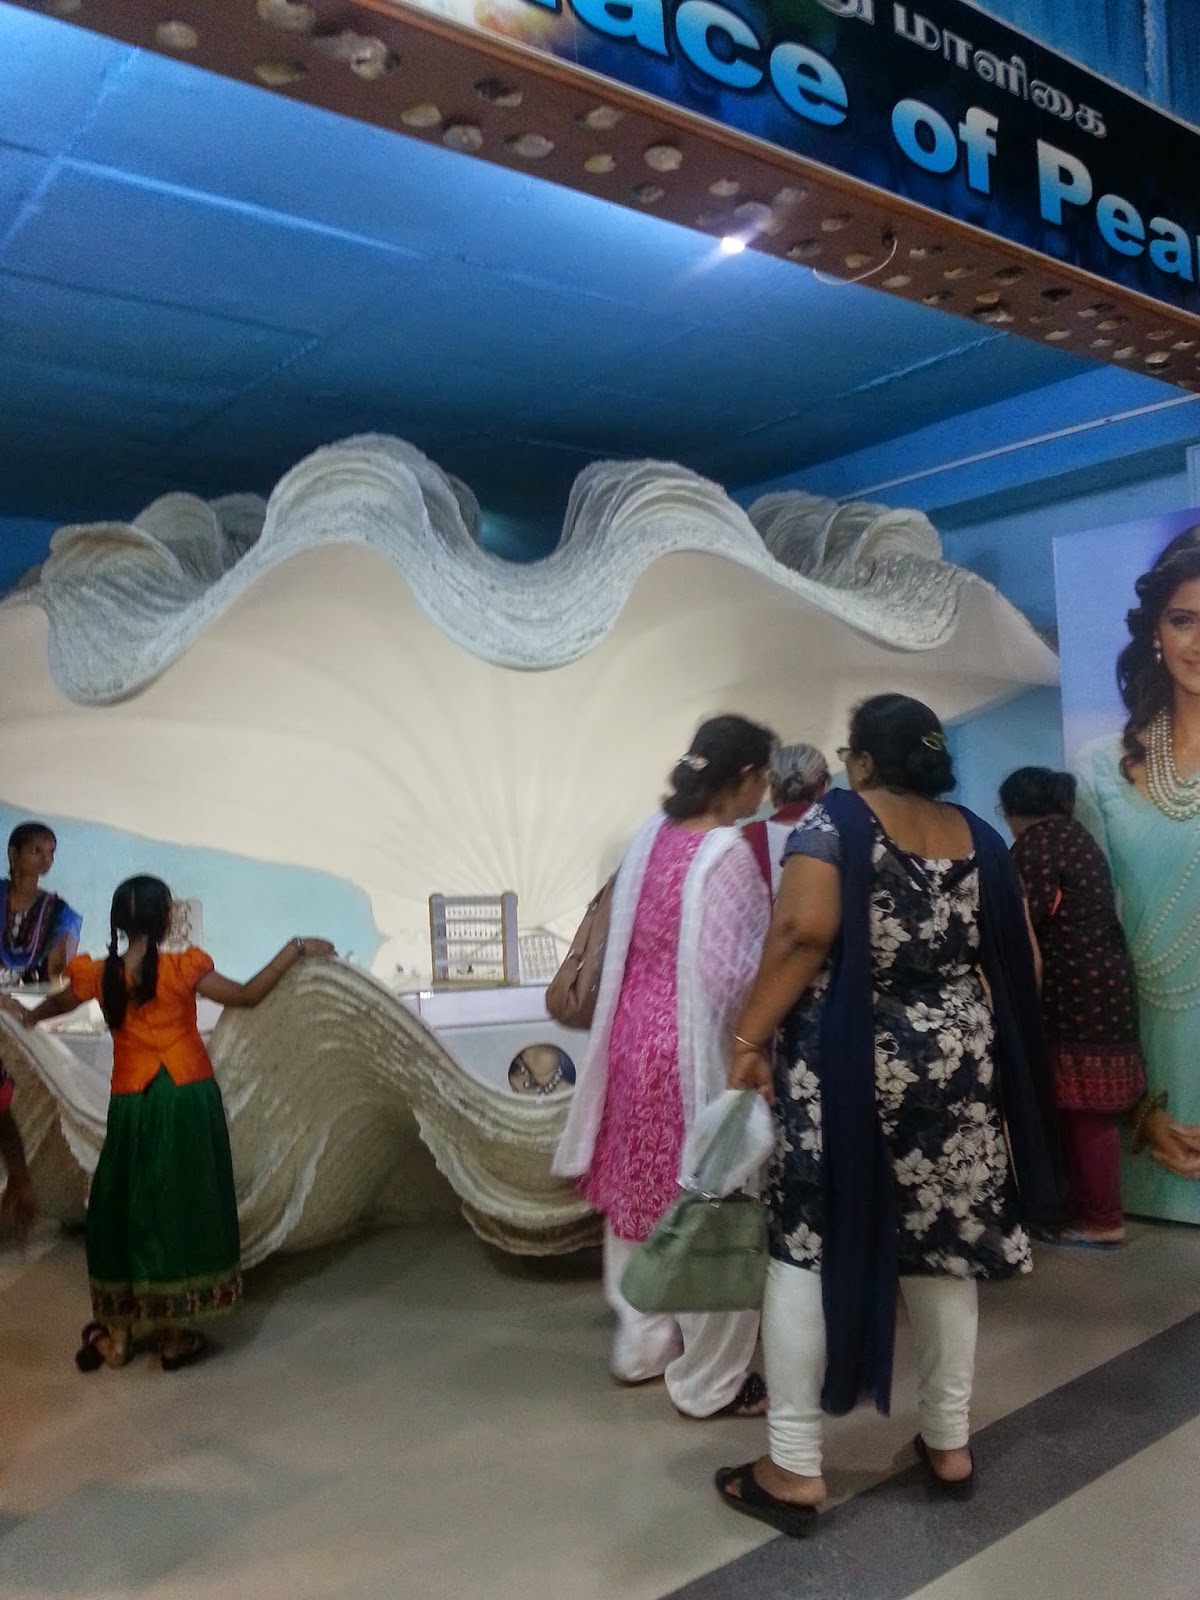 Shell Exhibition Mahabalipuram : Brewing thoughts over a cuppa coffee the amazing sea